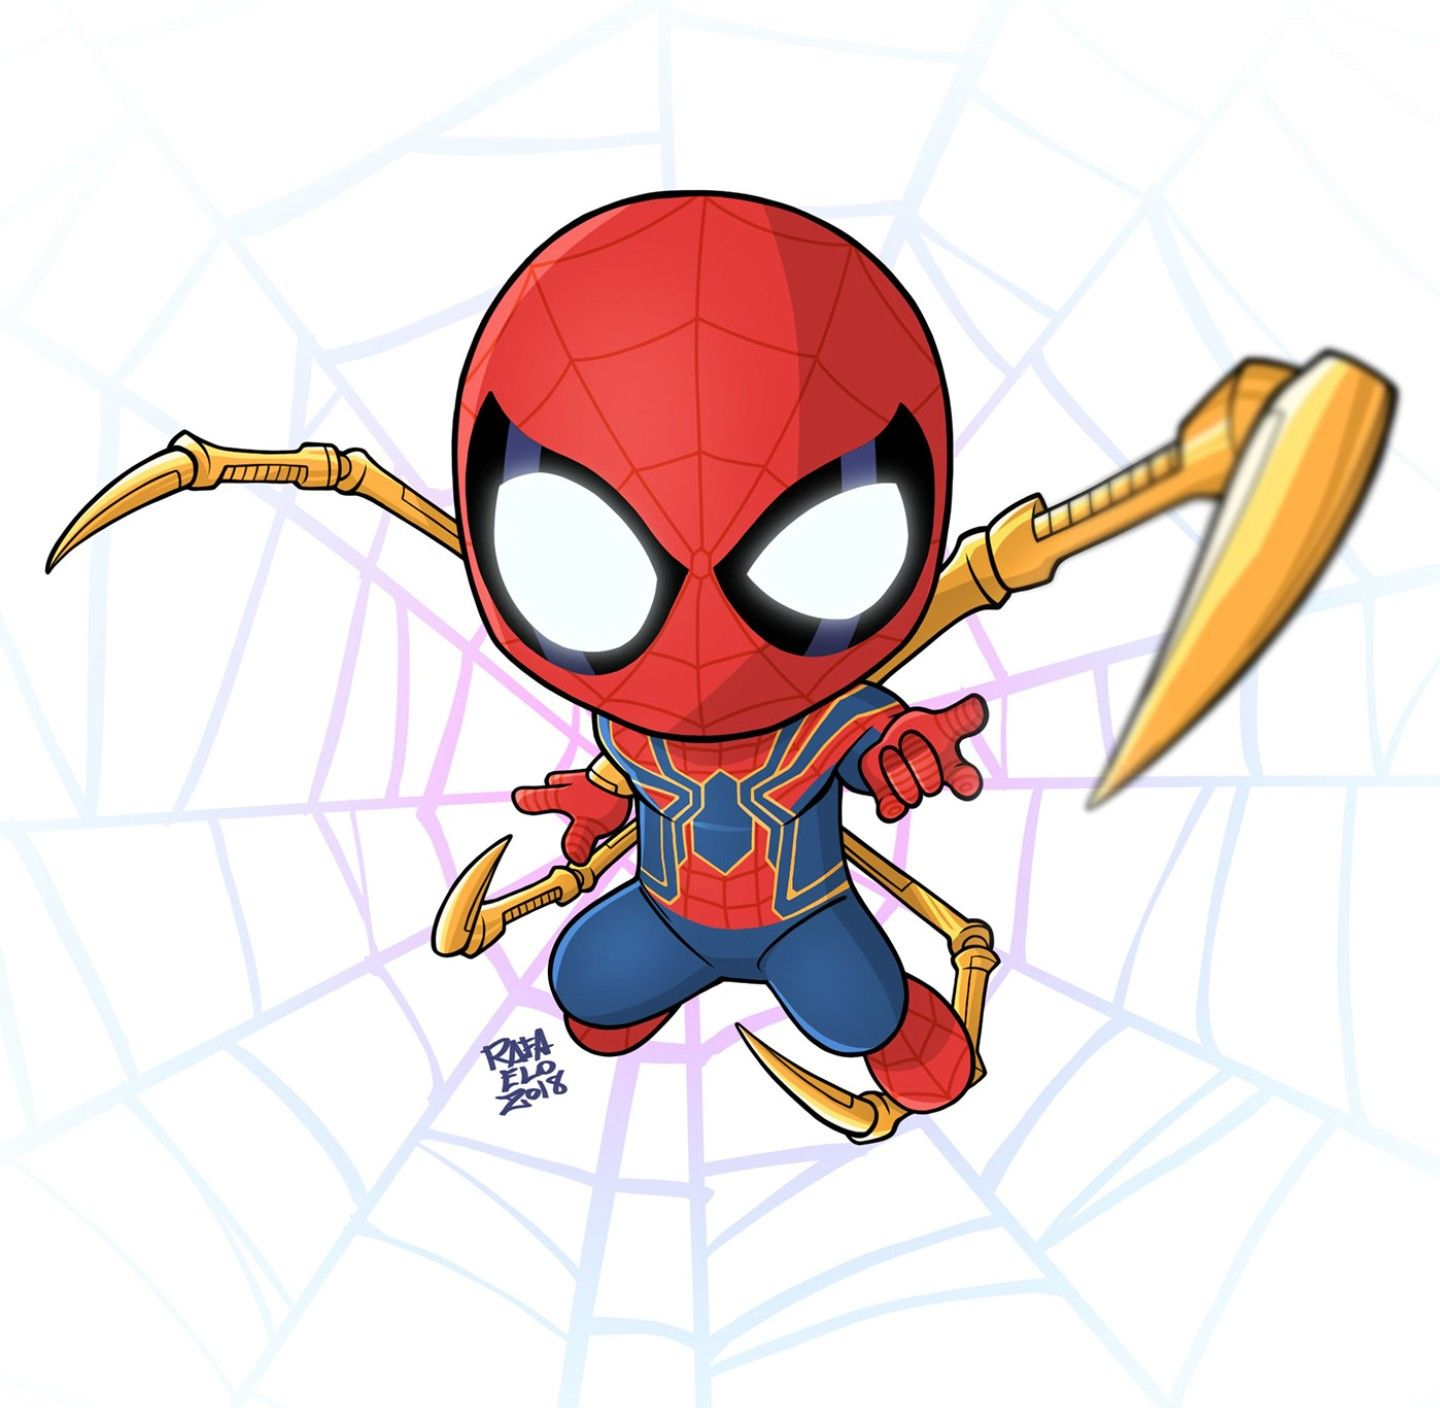 100 Photos of Avengers Spiderman Cartoon